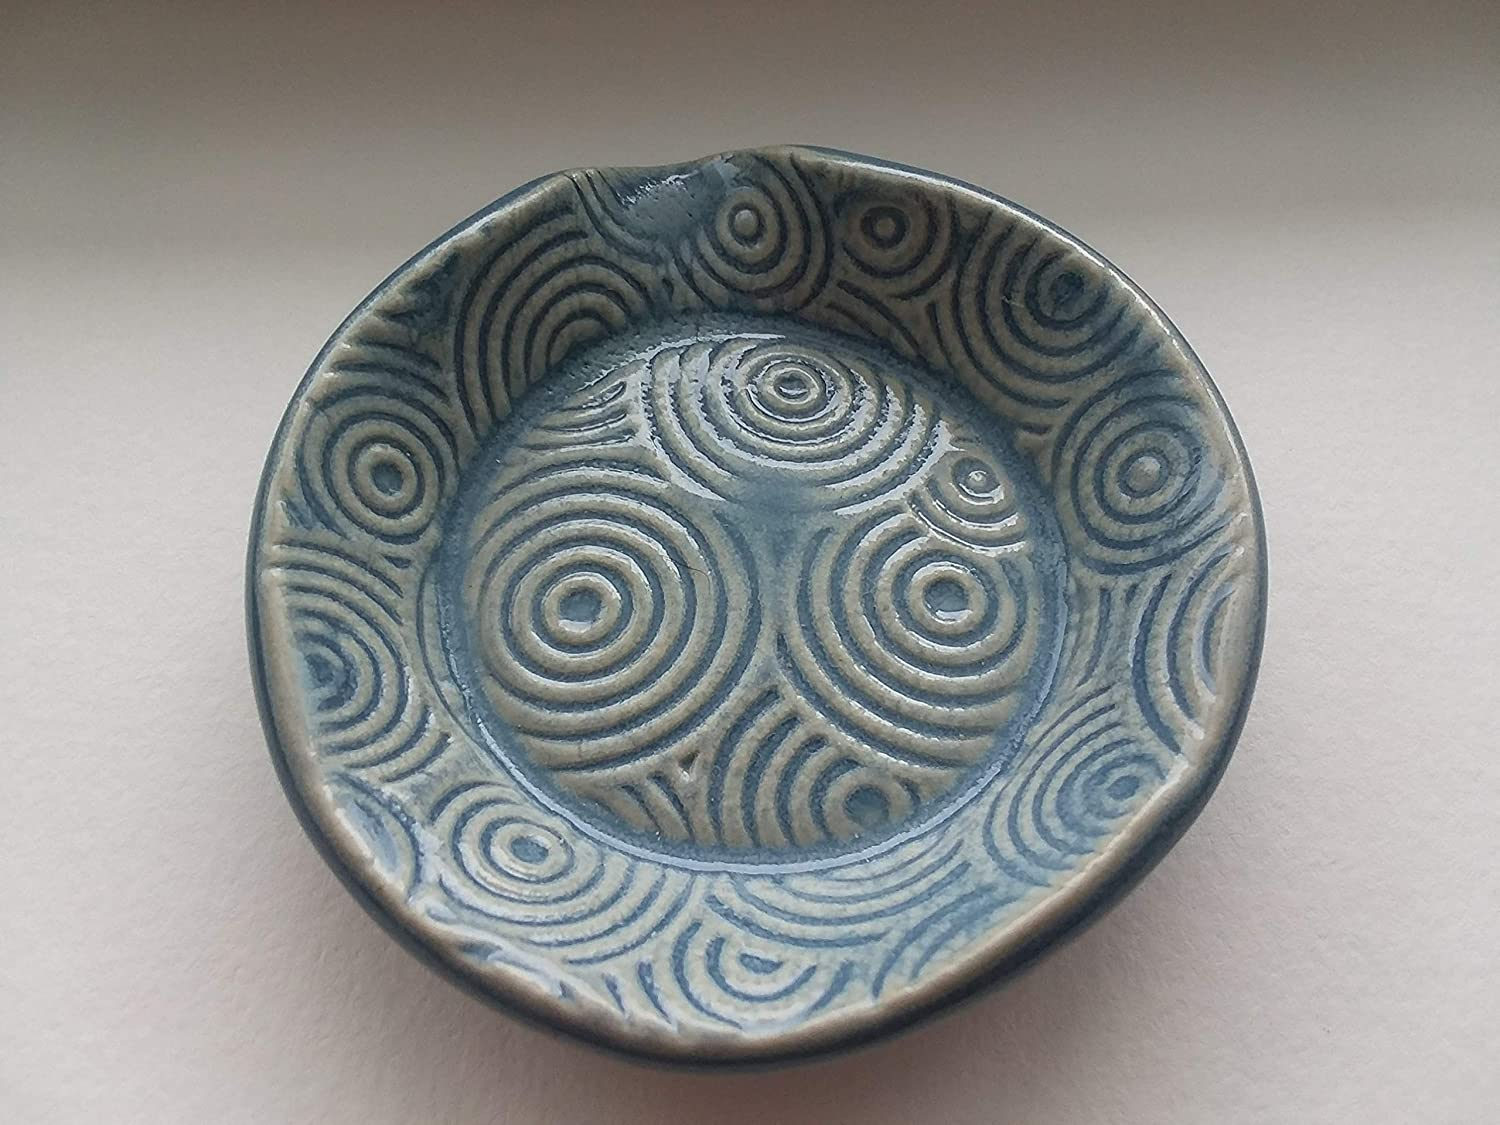 light blue teaspoon rest with stripped or circular patterns